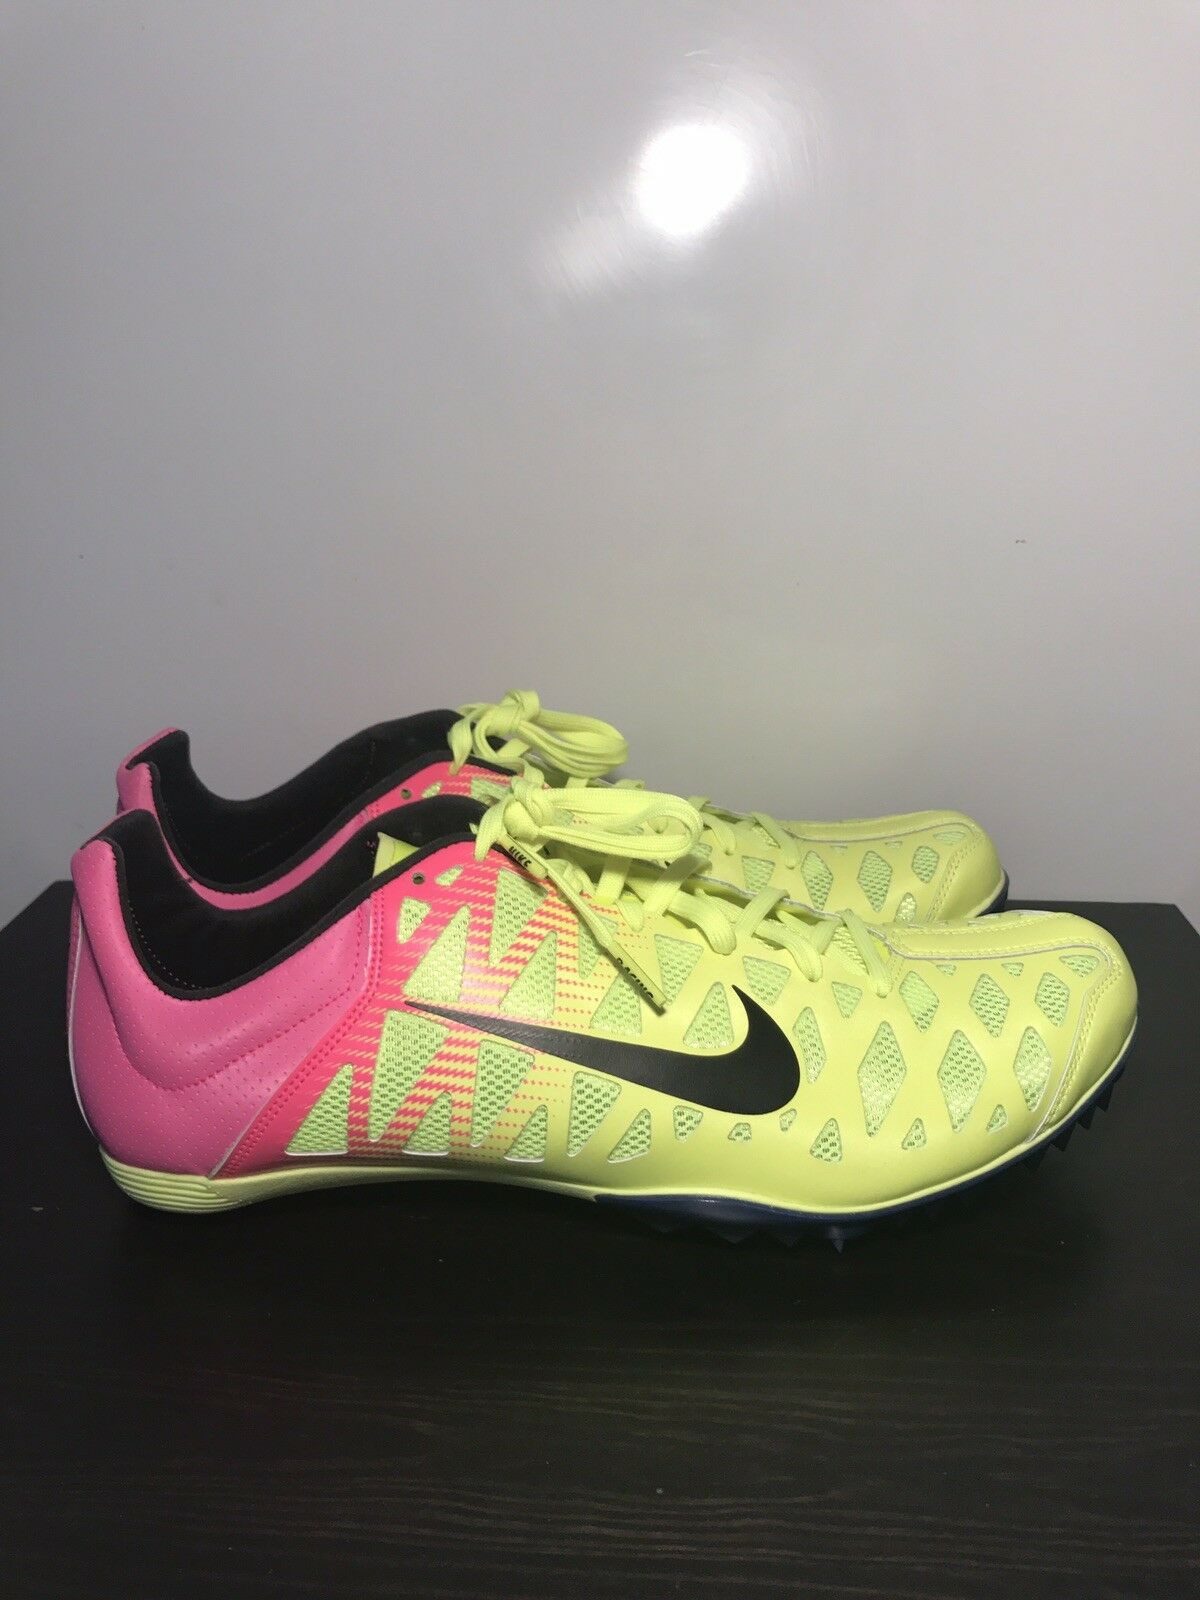 NIKE ZOOM MAXCAT 4 TRACK RUNNING SPIKES RIO OLYMPICS MEN SZ 11.5 NEW WITH SPIKES